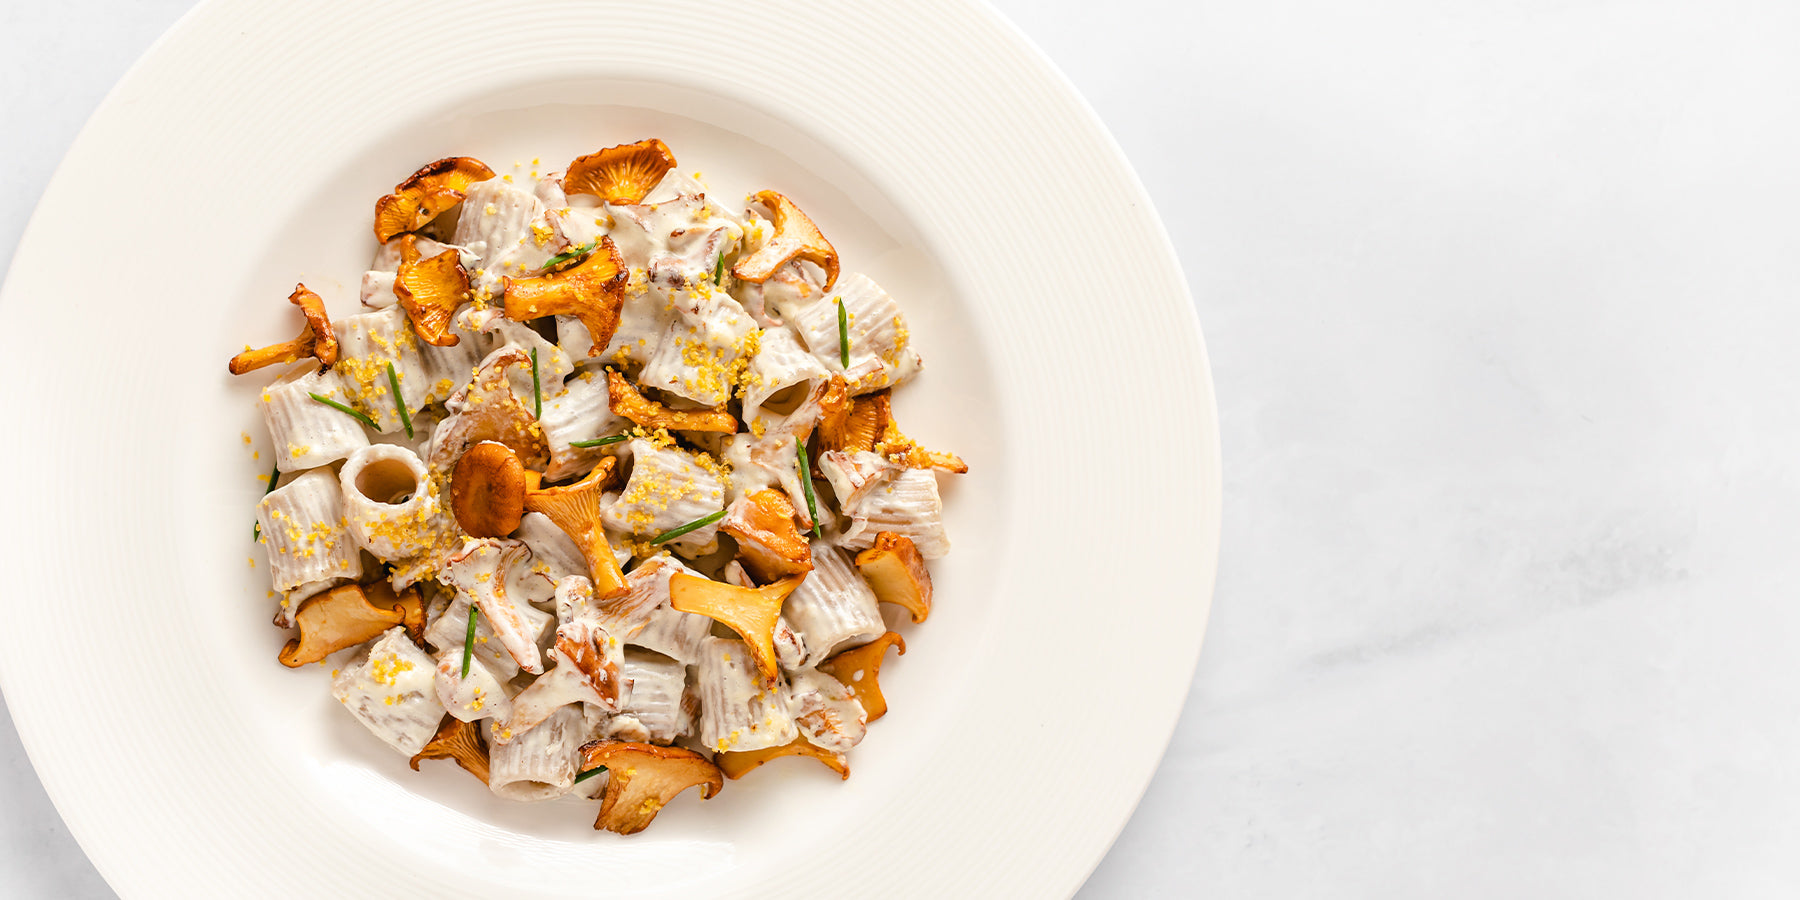 Plate of Baked Sorghum Mezze Maniche with Chanterelles